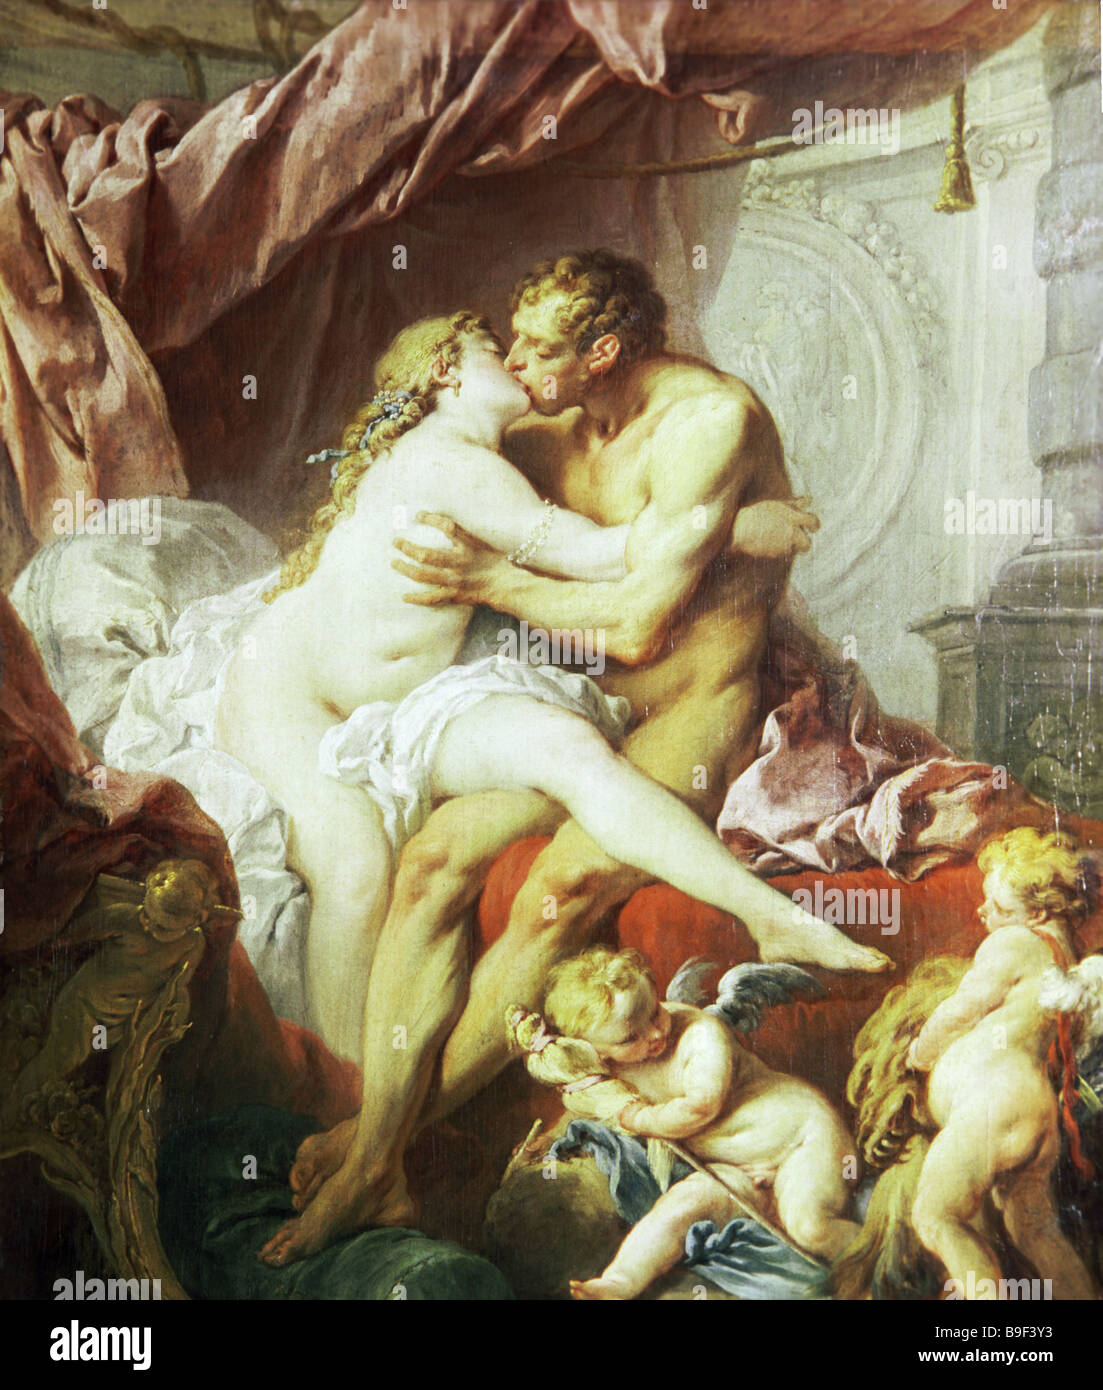 Francois Boucher 1703 1770 Hercules and Omphale State Pushkin Fine Arts Museum Moscow - Stock Image